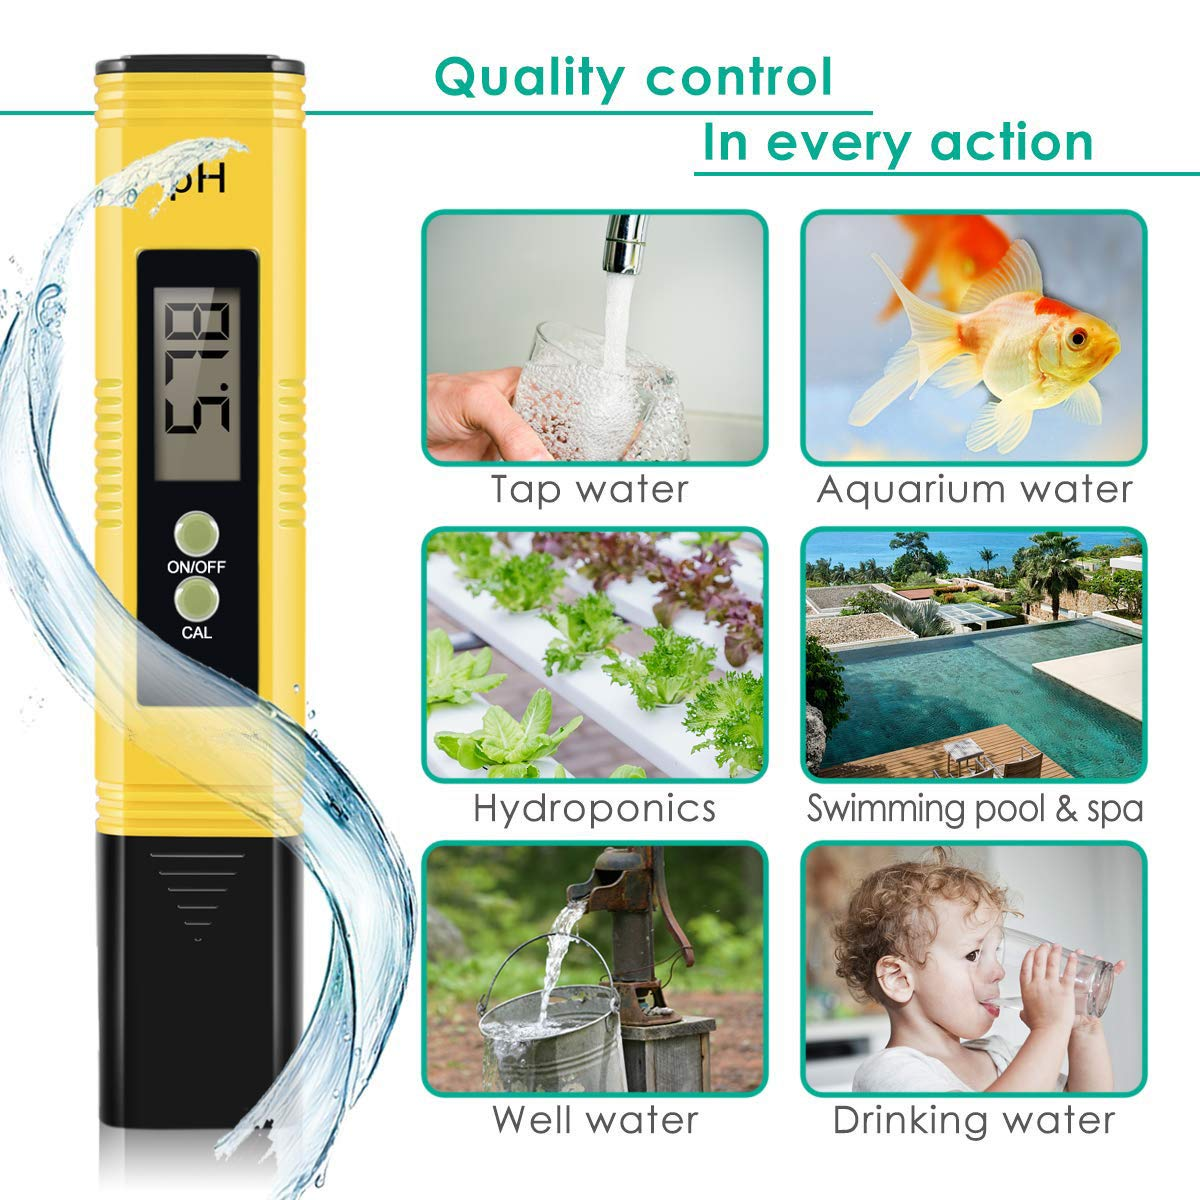 Vminno Digital PH Meter, PH Meter 0.01 PH High Accuracy Water Quality Tester with 0-14 PH Measurement Range for Household Drinking, Pool and Aquarium Water PH Tester Design with ATC by Vminno (Image #3)